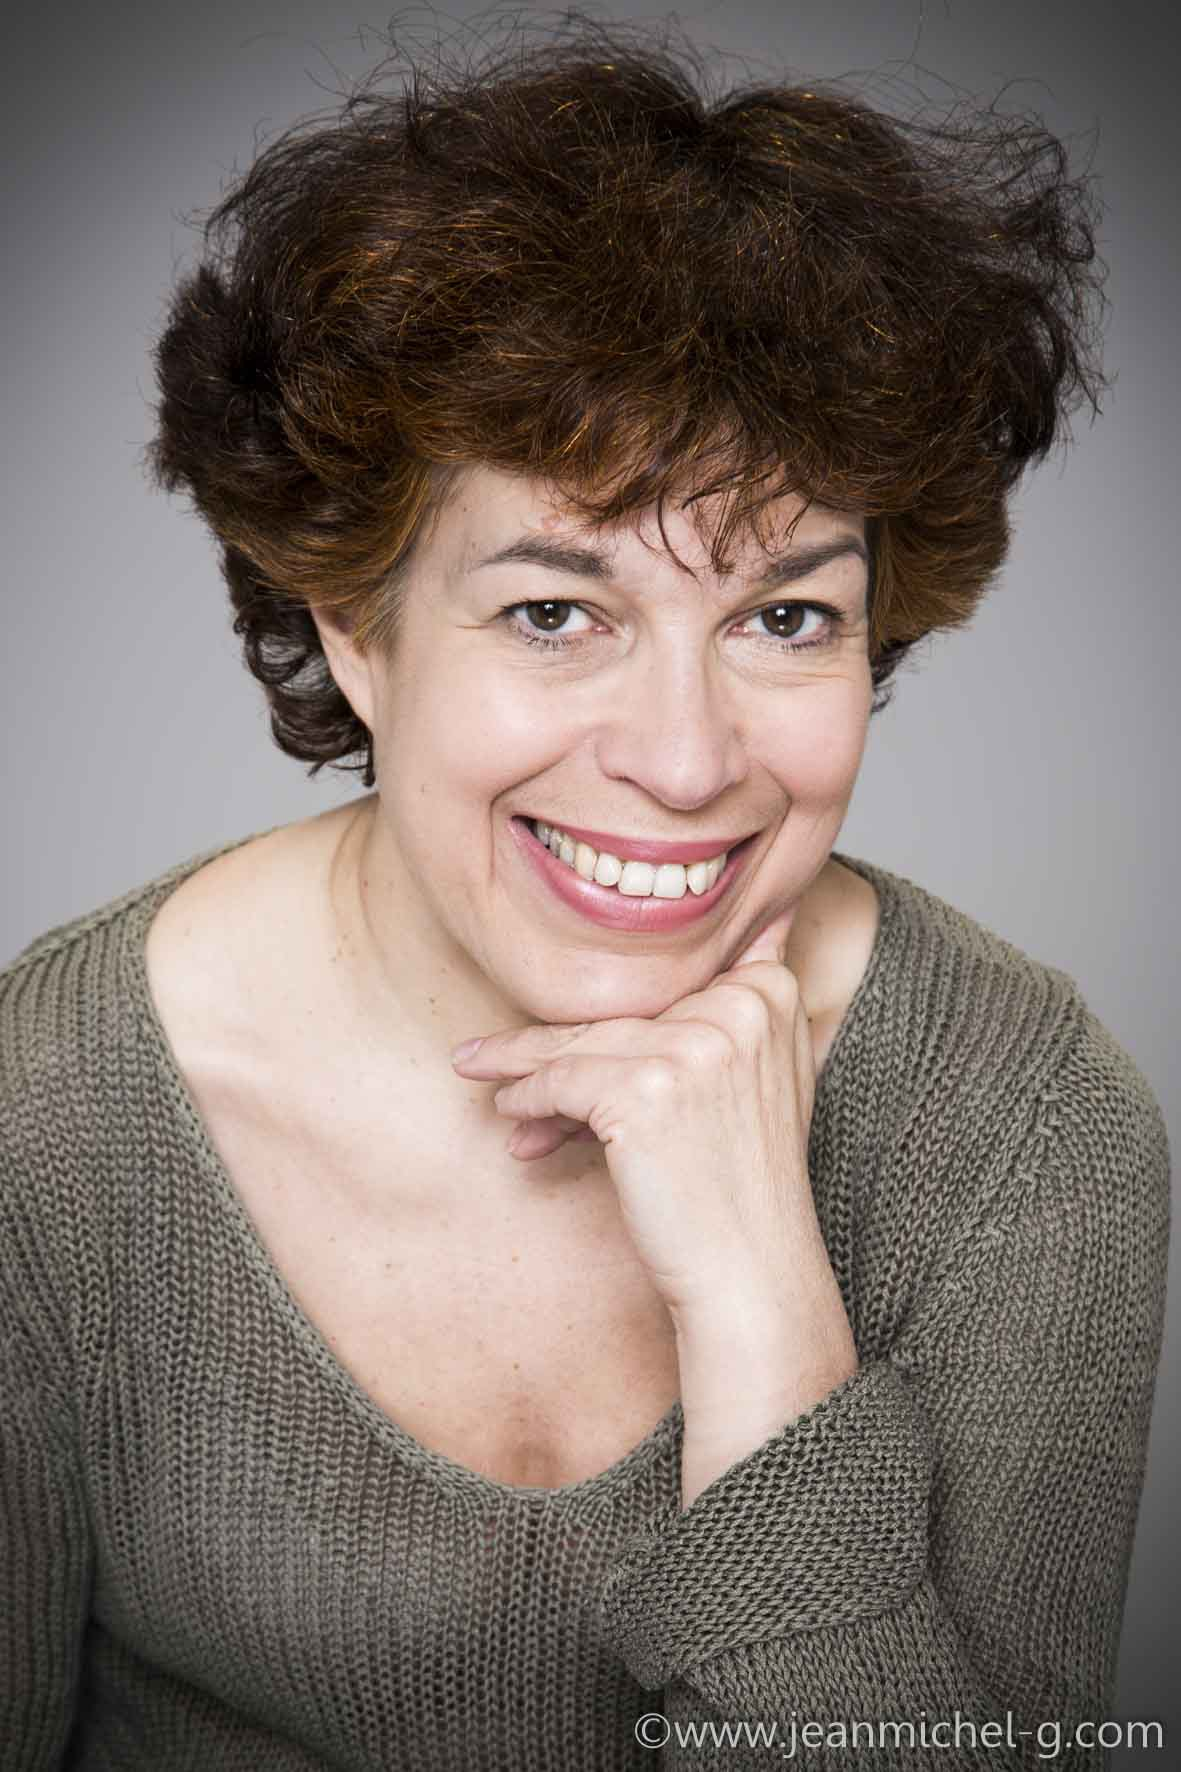 catherine artigala